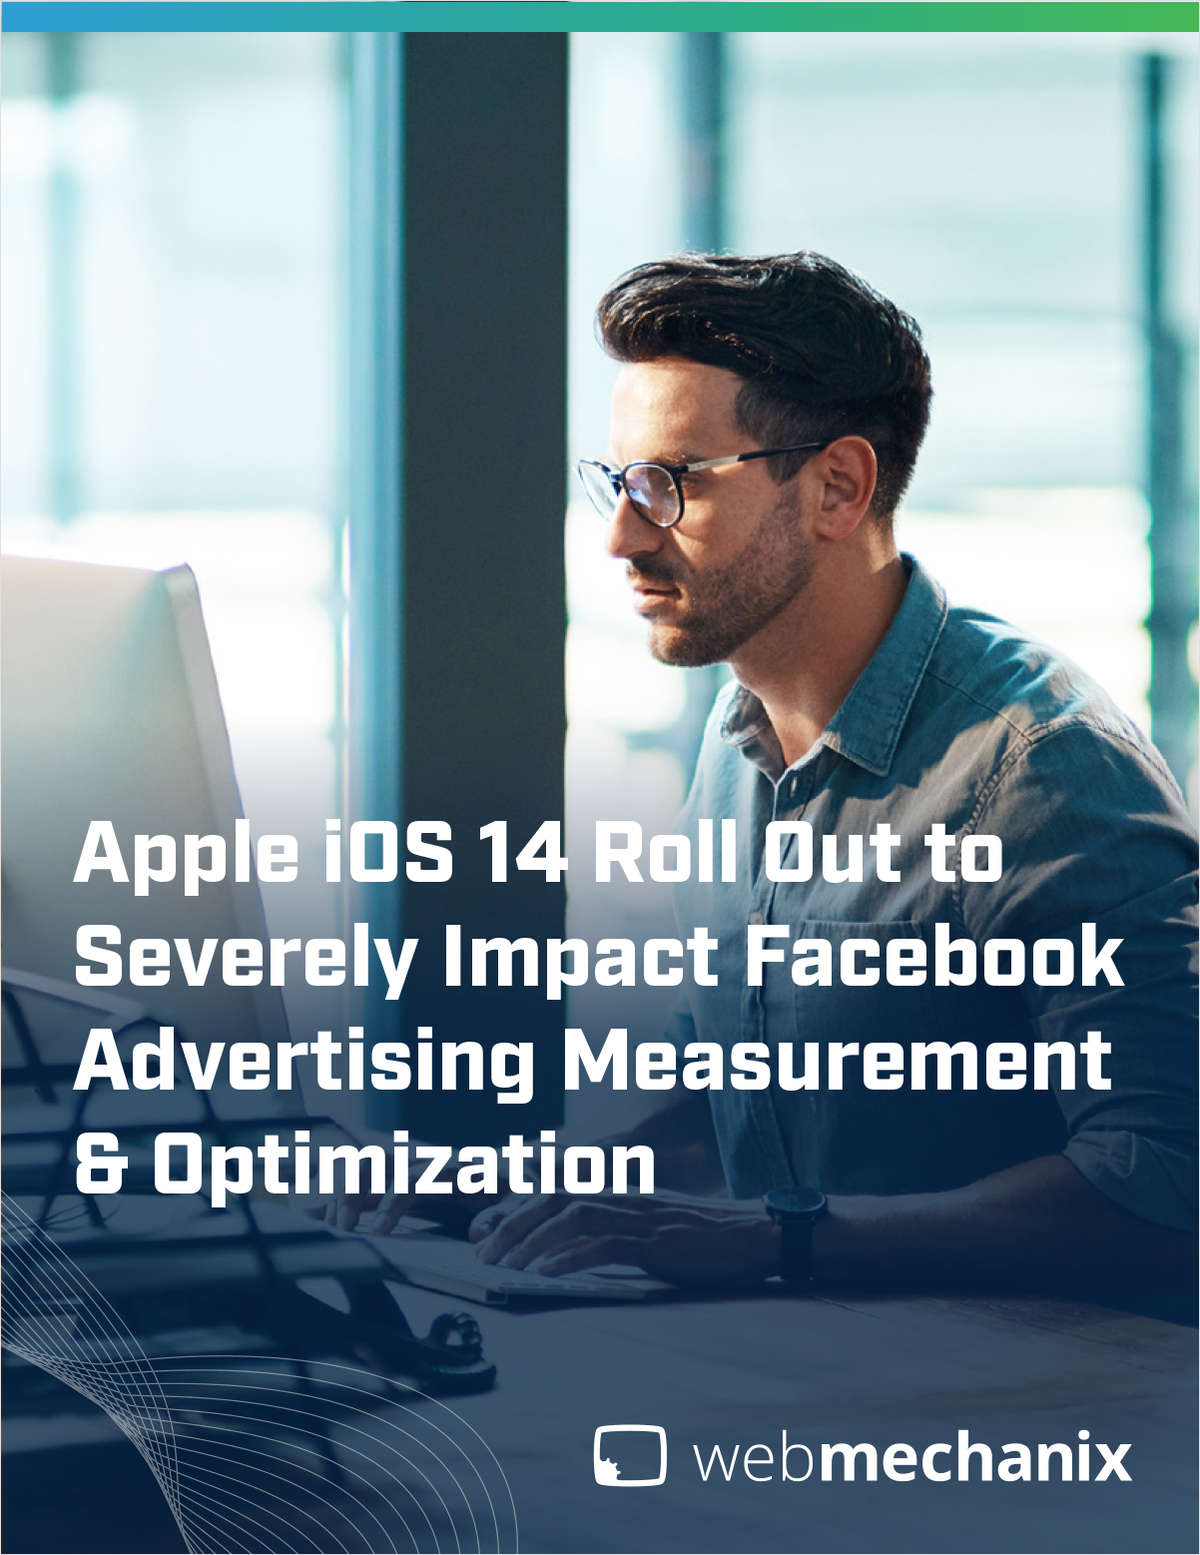 Apple iOS 14 Roll-Out may Severely Impact Advertising and Optimization